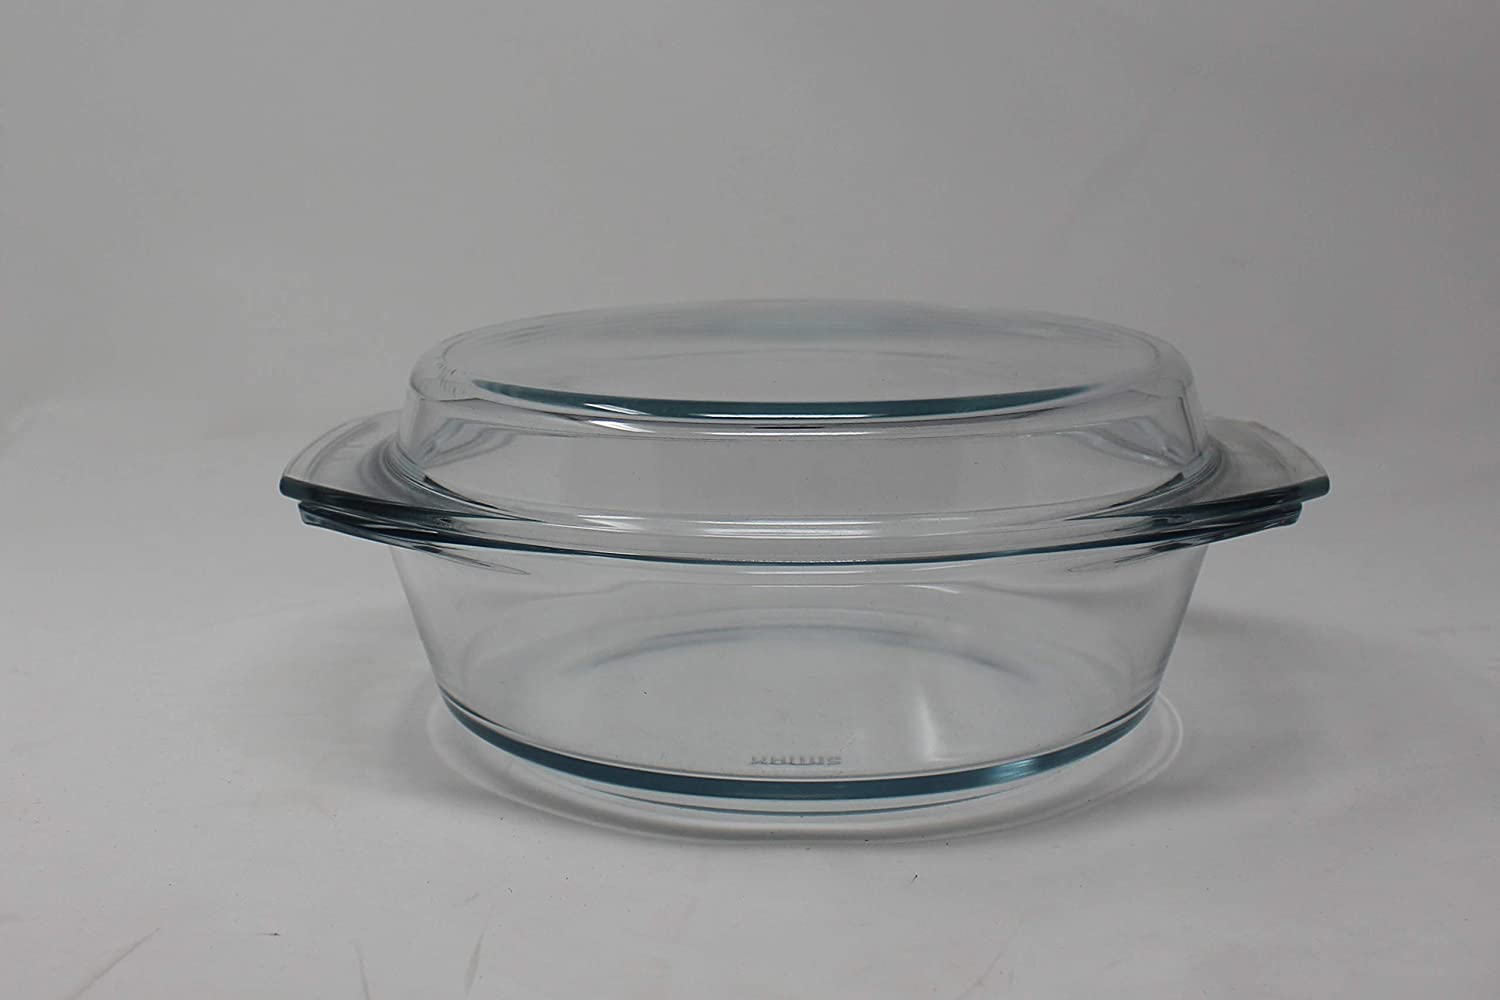 Clear Round Glass Casserole by Simax | With Lid, Heat, Cold and Shock Proof, Made in Europe, Oven, Freezer and Dishwasher Safe, 2 Quart